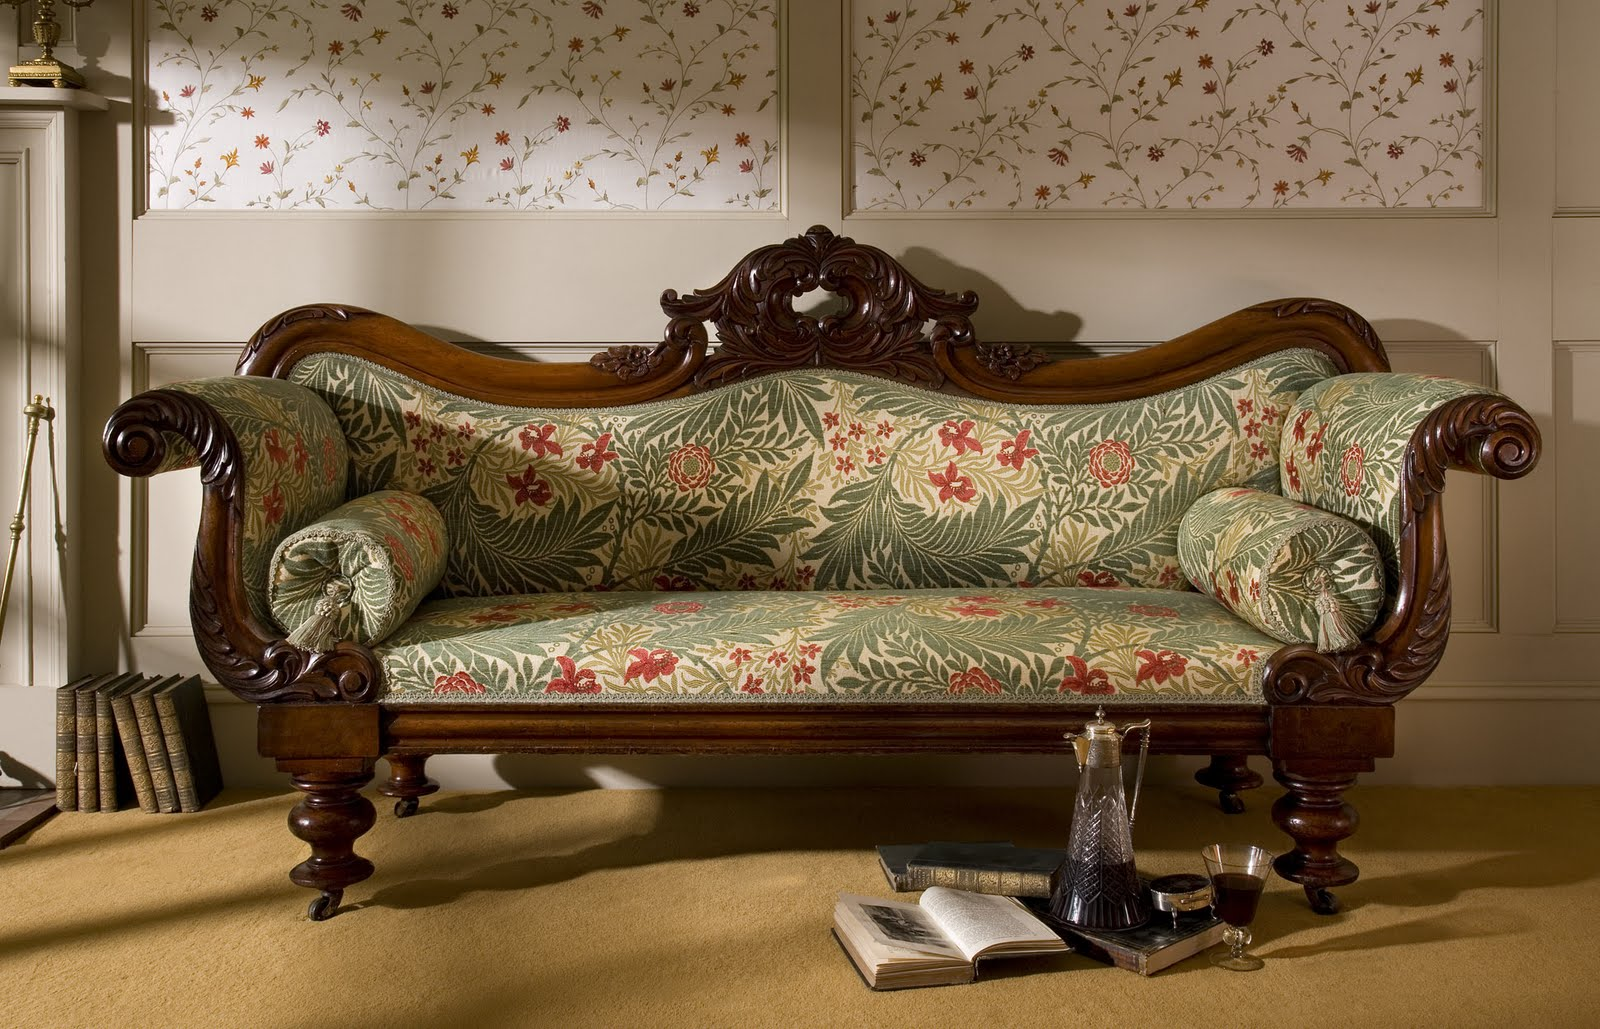 Wheathills handmade furniture upholstery in designer fabric for Furniture upholstery